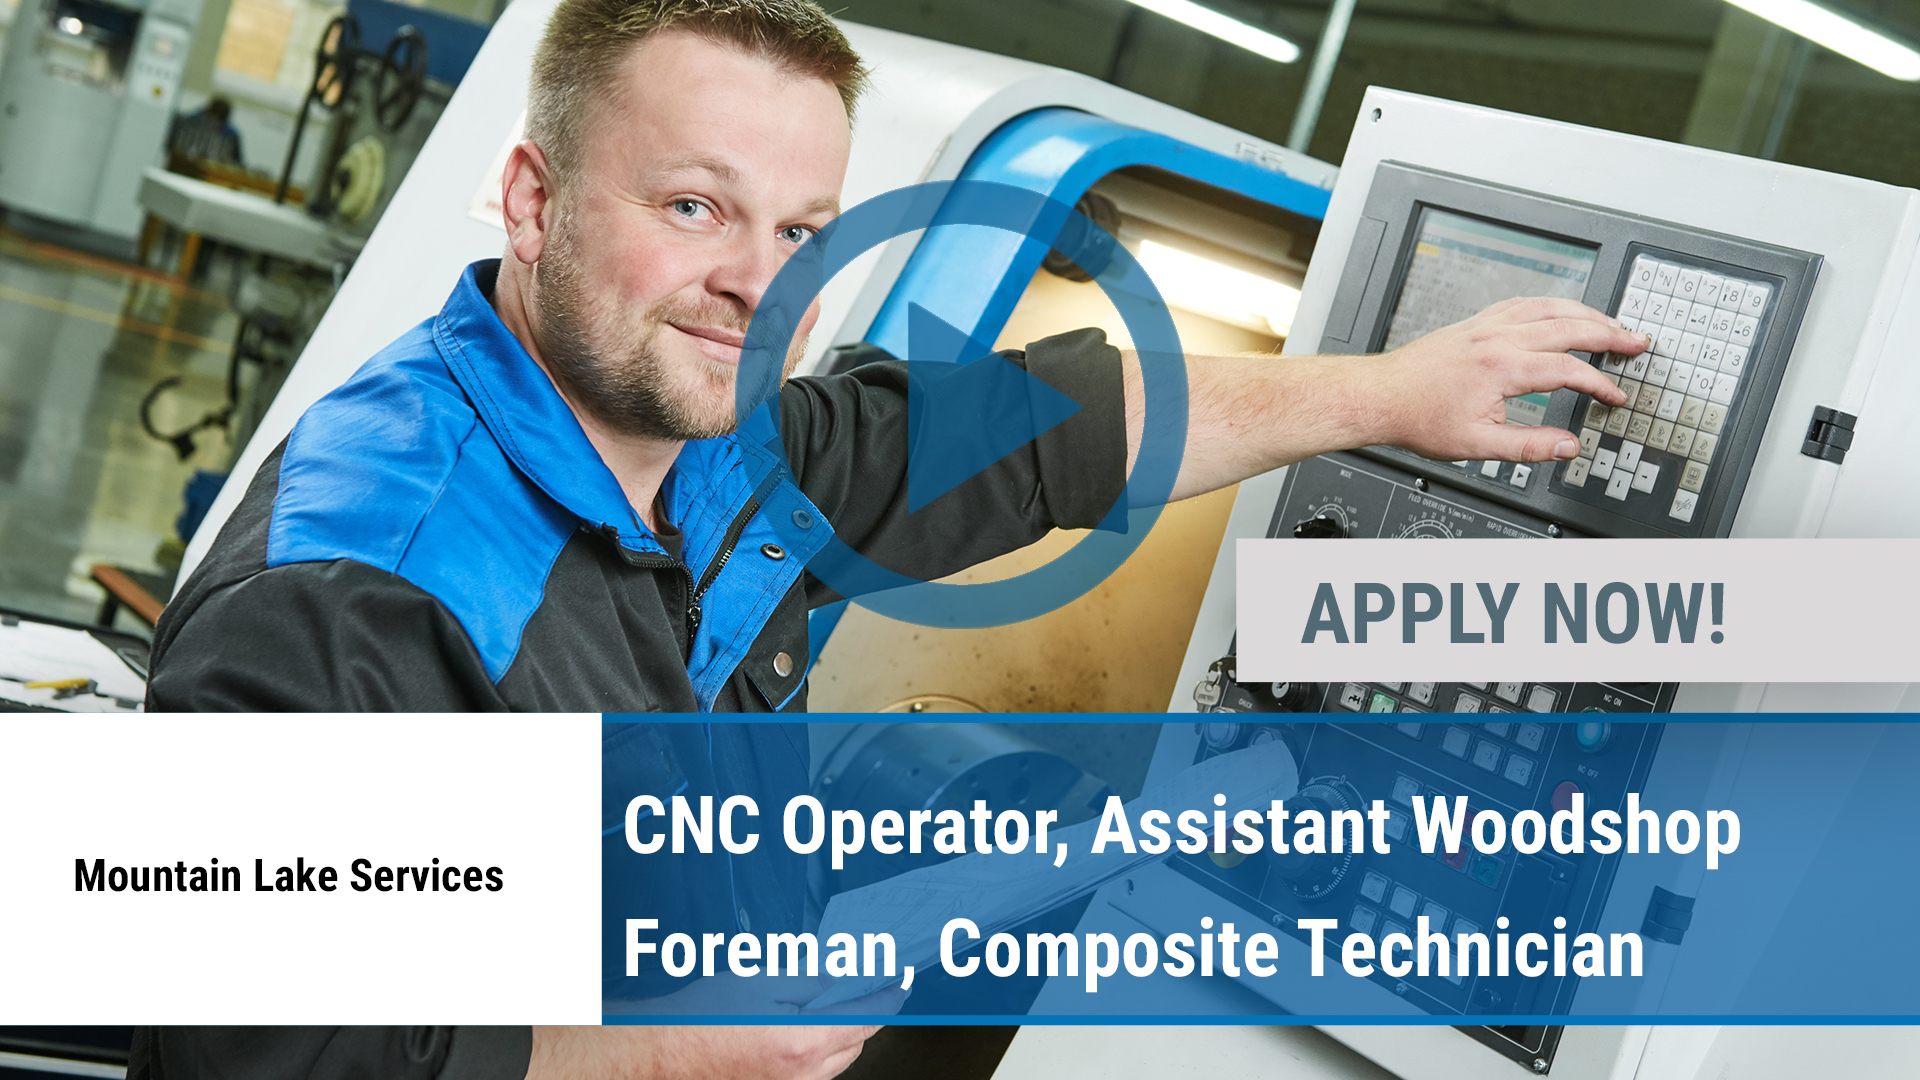 Watch our careers video for available job opening CNC Operator, Assistant Woodshop Foreman, Composi in Port Henry, NY